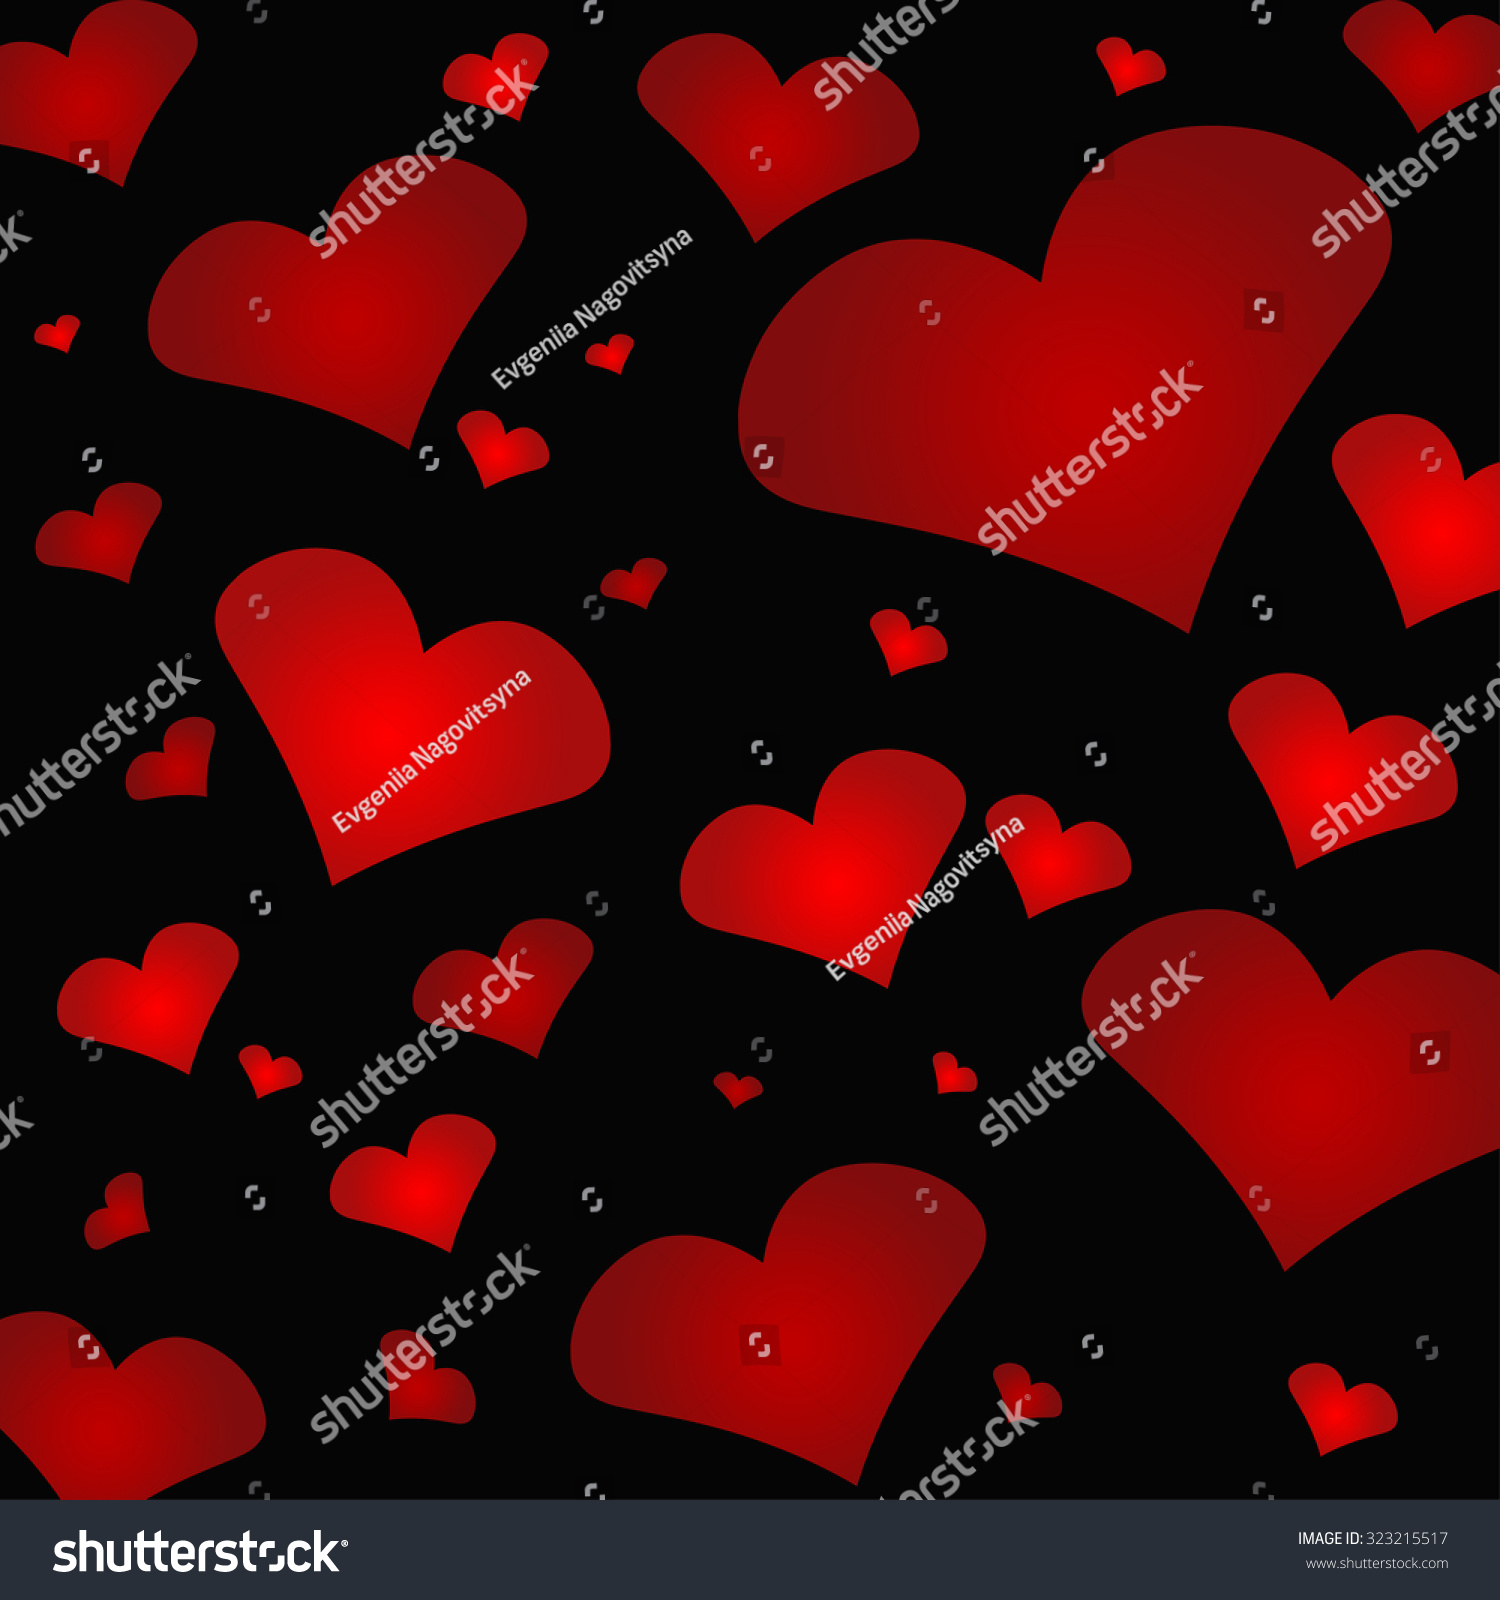 Many Different Hearts Vector Print With Many Hearts Of Different